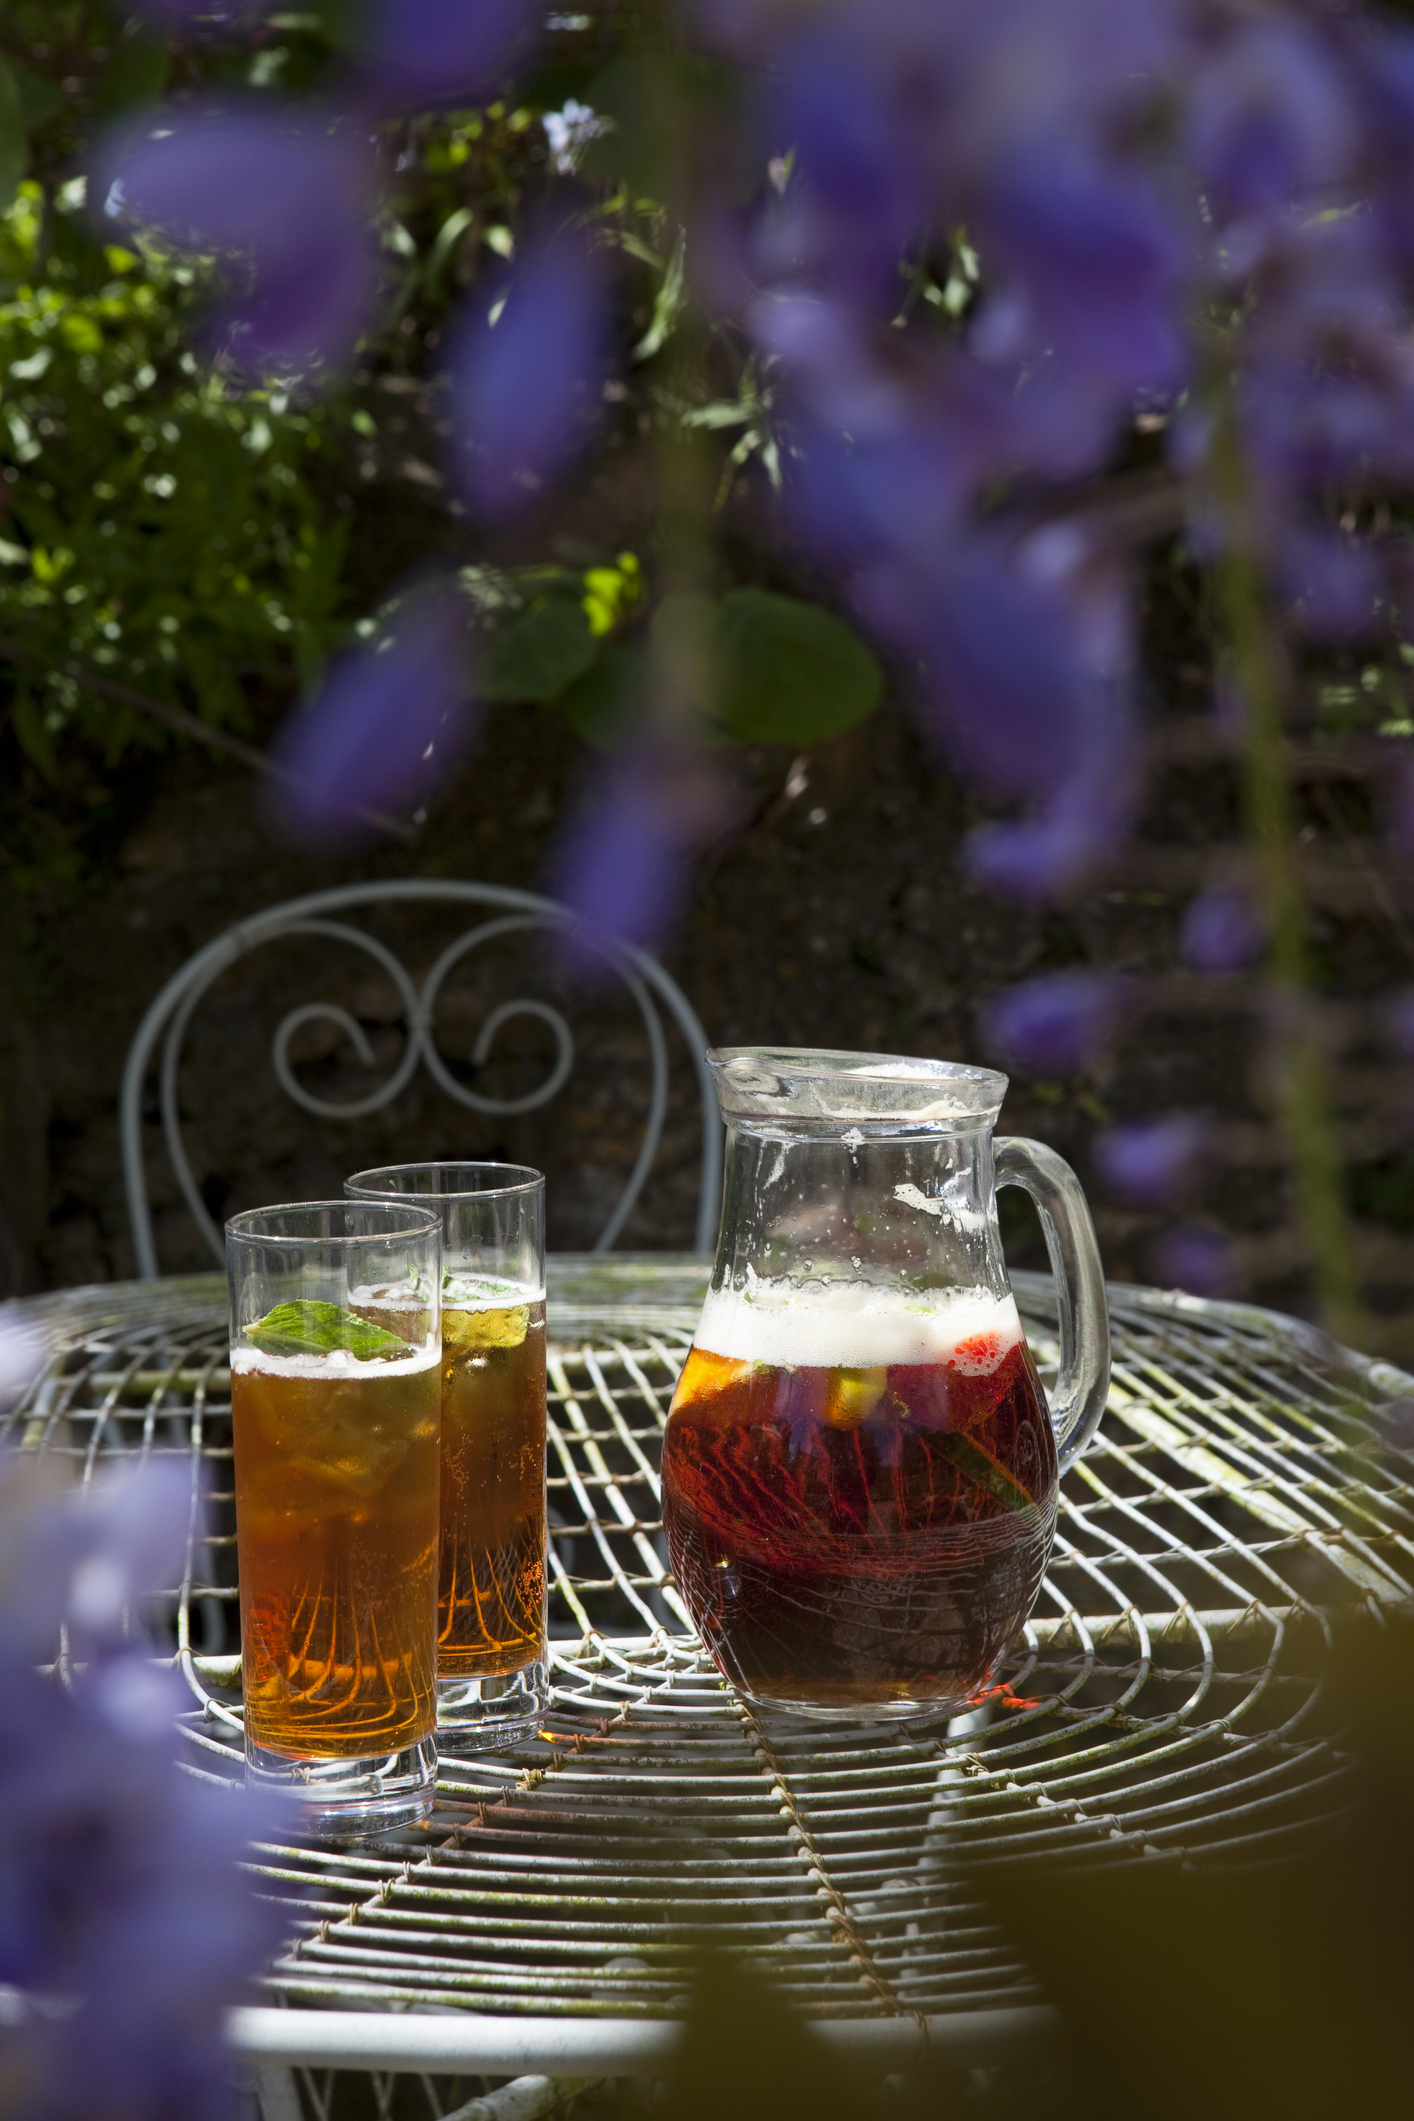 Pimm's Cup (England)